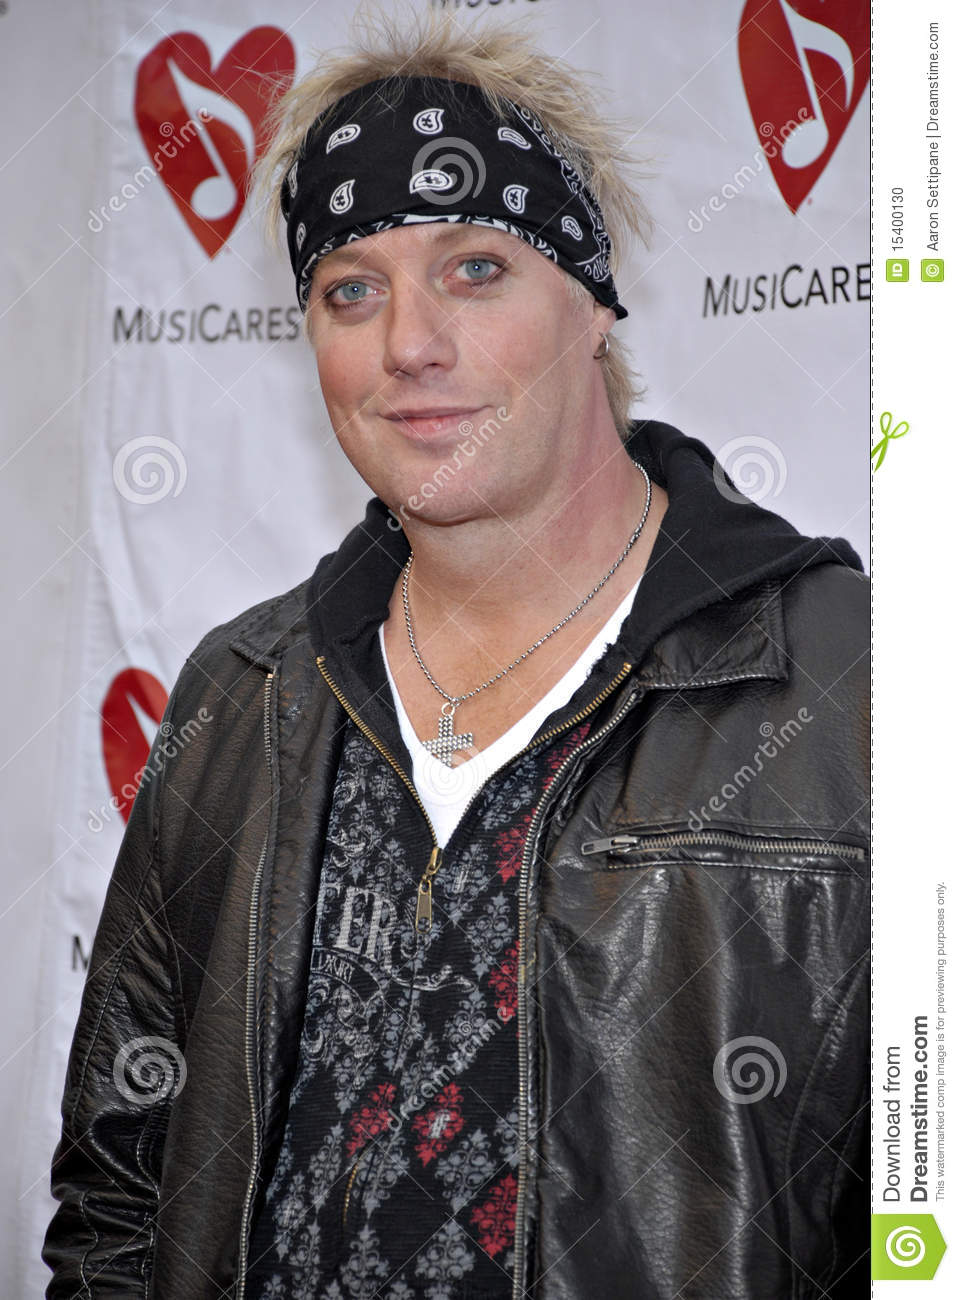 Jani Lane on the red carpet.